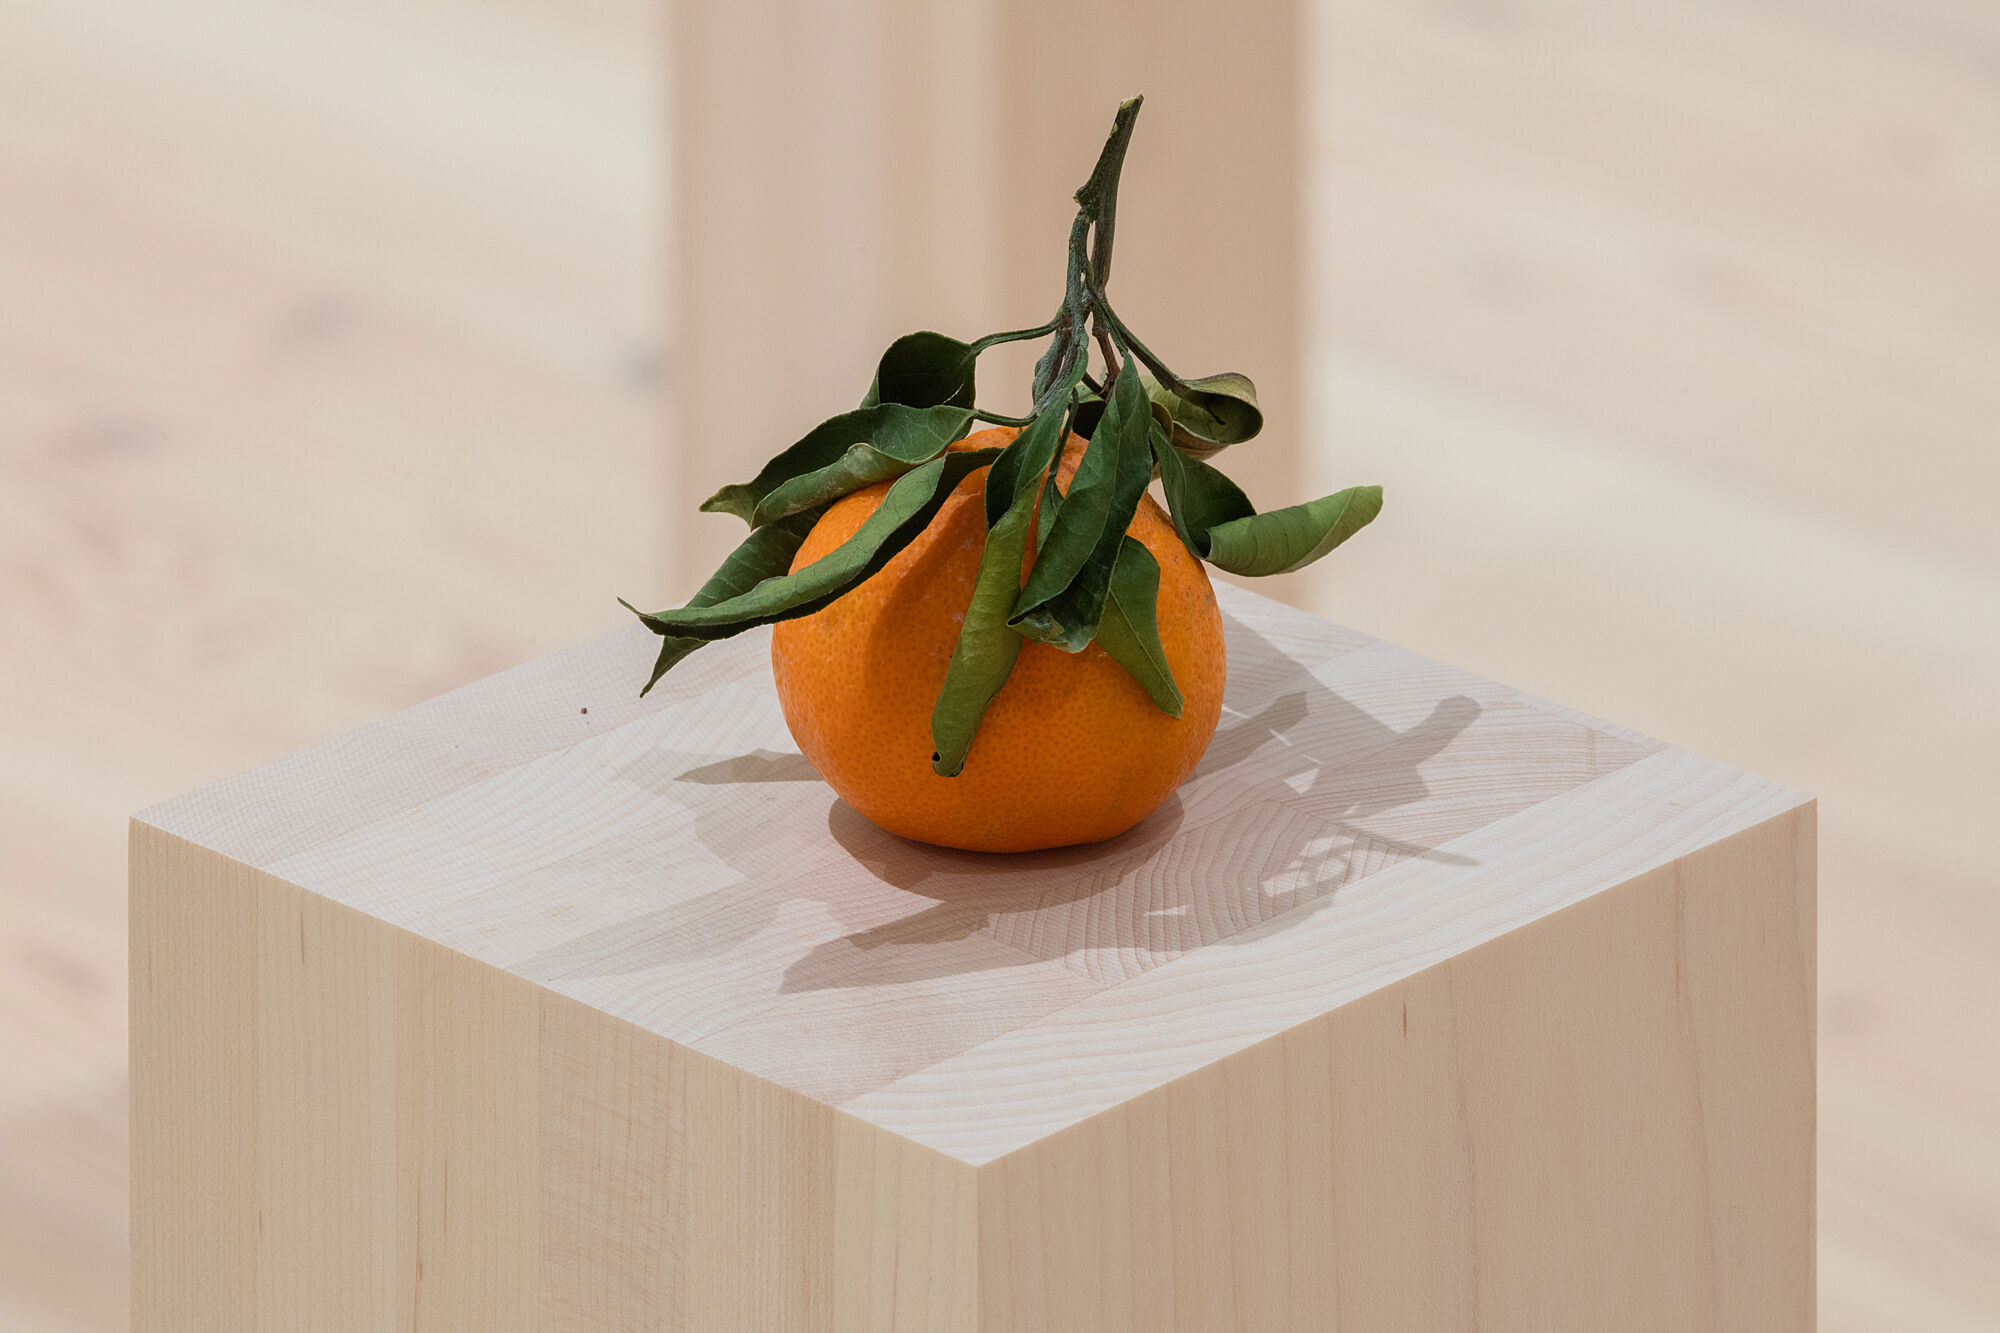 A photo of a clementine on a plinth.